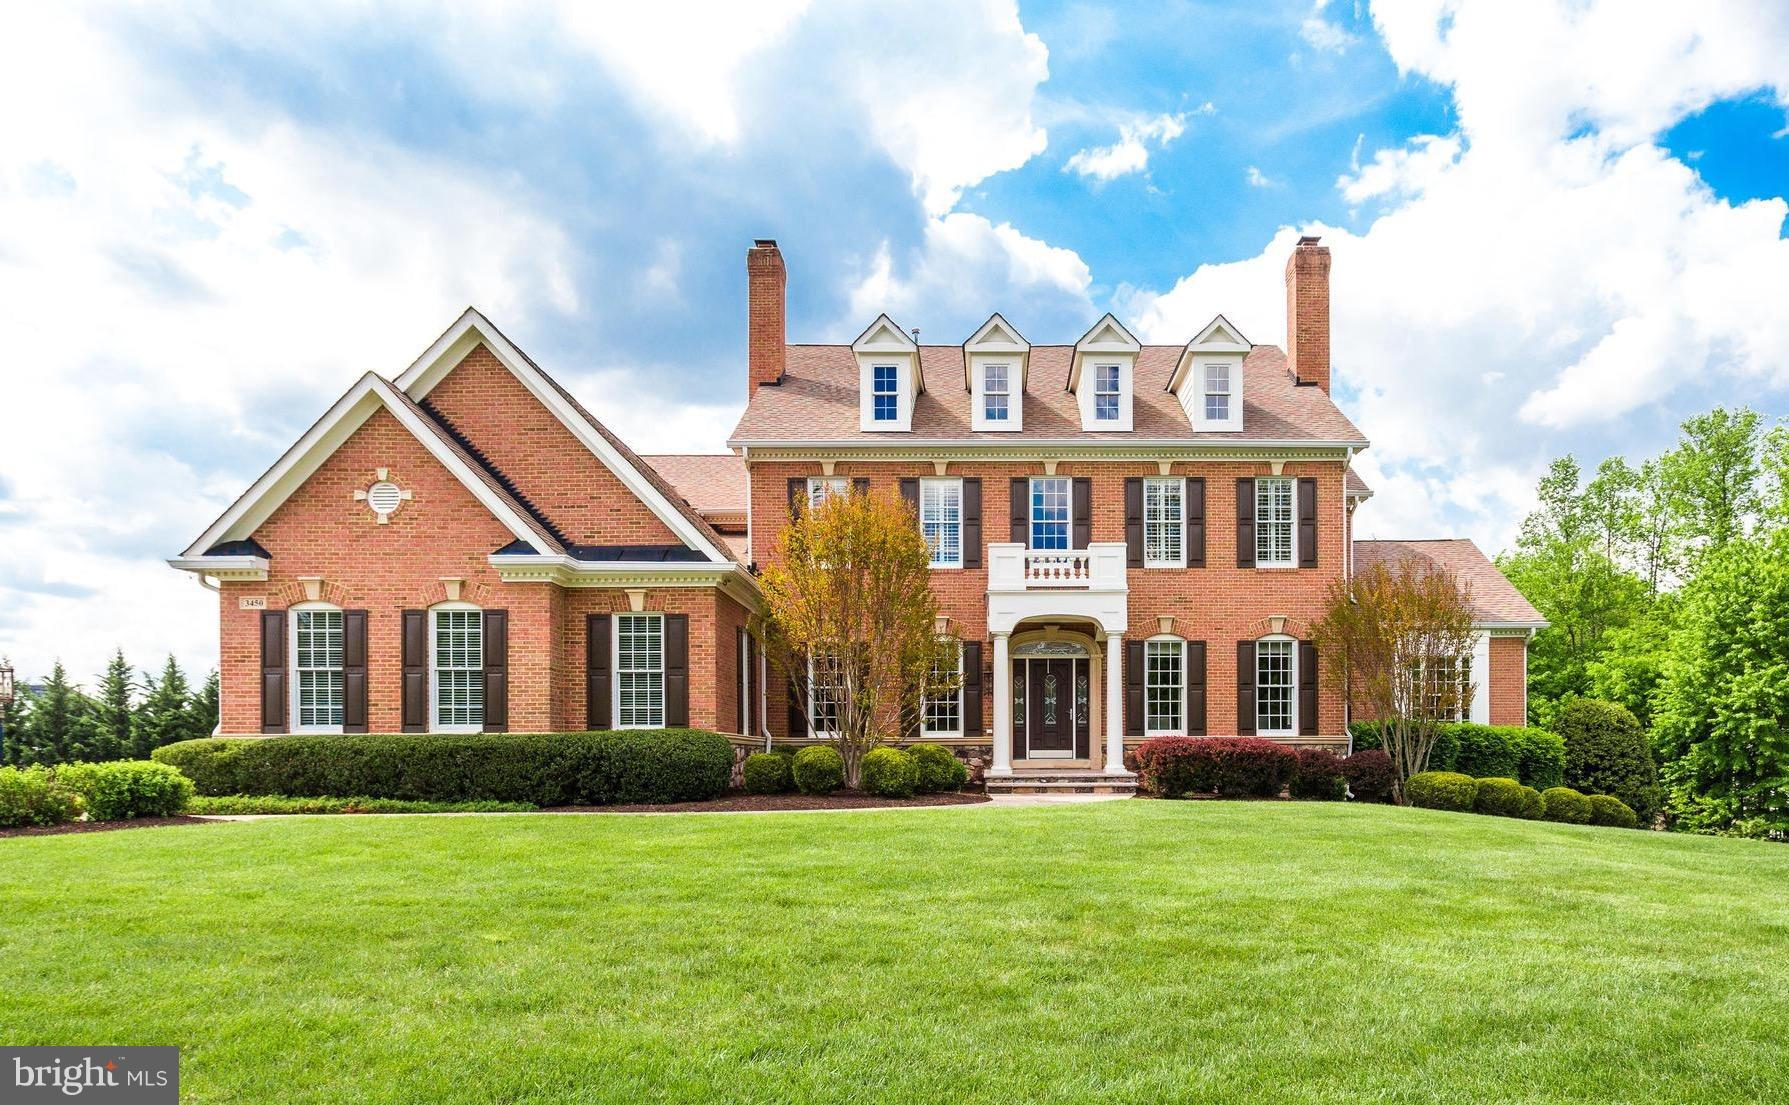 STUNNING BRICK & STONE MASTERPIECE* Over 9100 sf* 4 FP* Dual Strcases, Intricate Iron & Hardwood* Awe-inspiring Chef's Kit w Wolf/Sub Zero, Bertch Cherry Inlaid Cab*Morning Rm w/BI Cabinetry* Sunrm w/WI Closet, Full BA* Enormous MBR w Sitting Rm w Wet Bar & FP* Luxe MBath w Tray Clg* 2 Main Lvl Studies* WO LL Rec Rm w Wet Bar, Game Rm, 5th BR w FB. 2 Porches, Patio & Firepit*DESIGNED TO PERFECTION